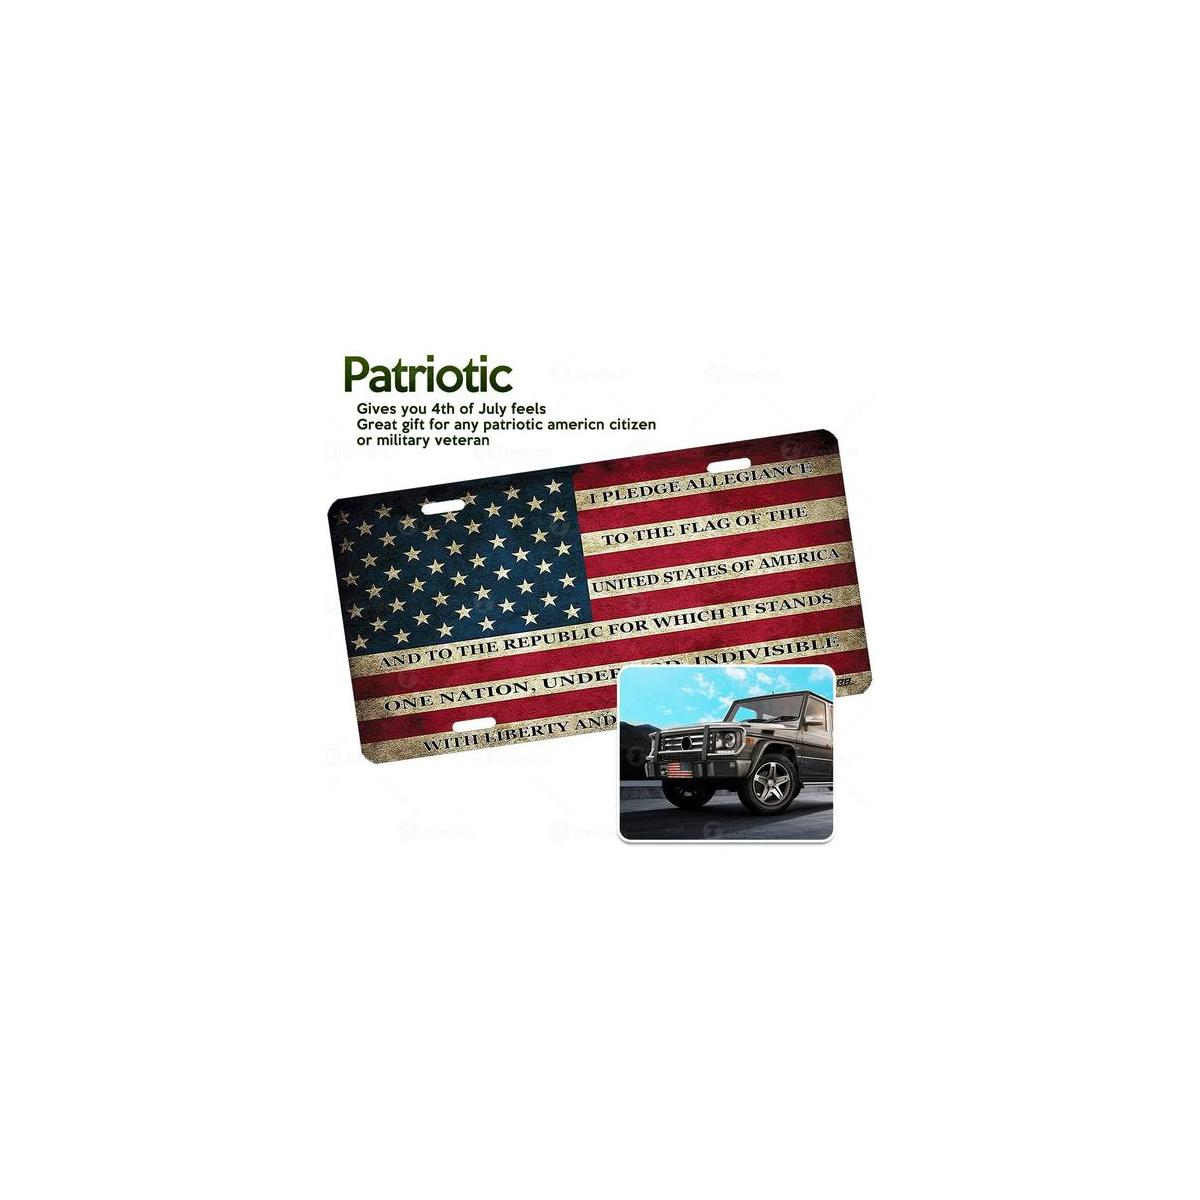 Zone Tech Tactical USA Flag License Plate Black and White Grunge Premium Quality Thick Durable Novelty American Patriotic Pledge of Allegiance